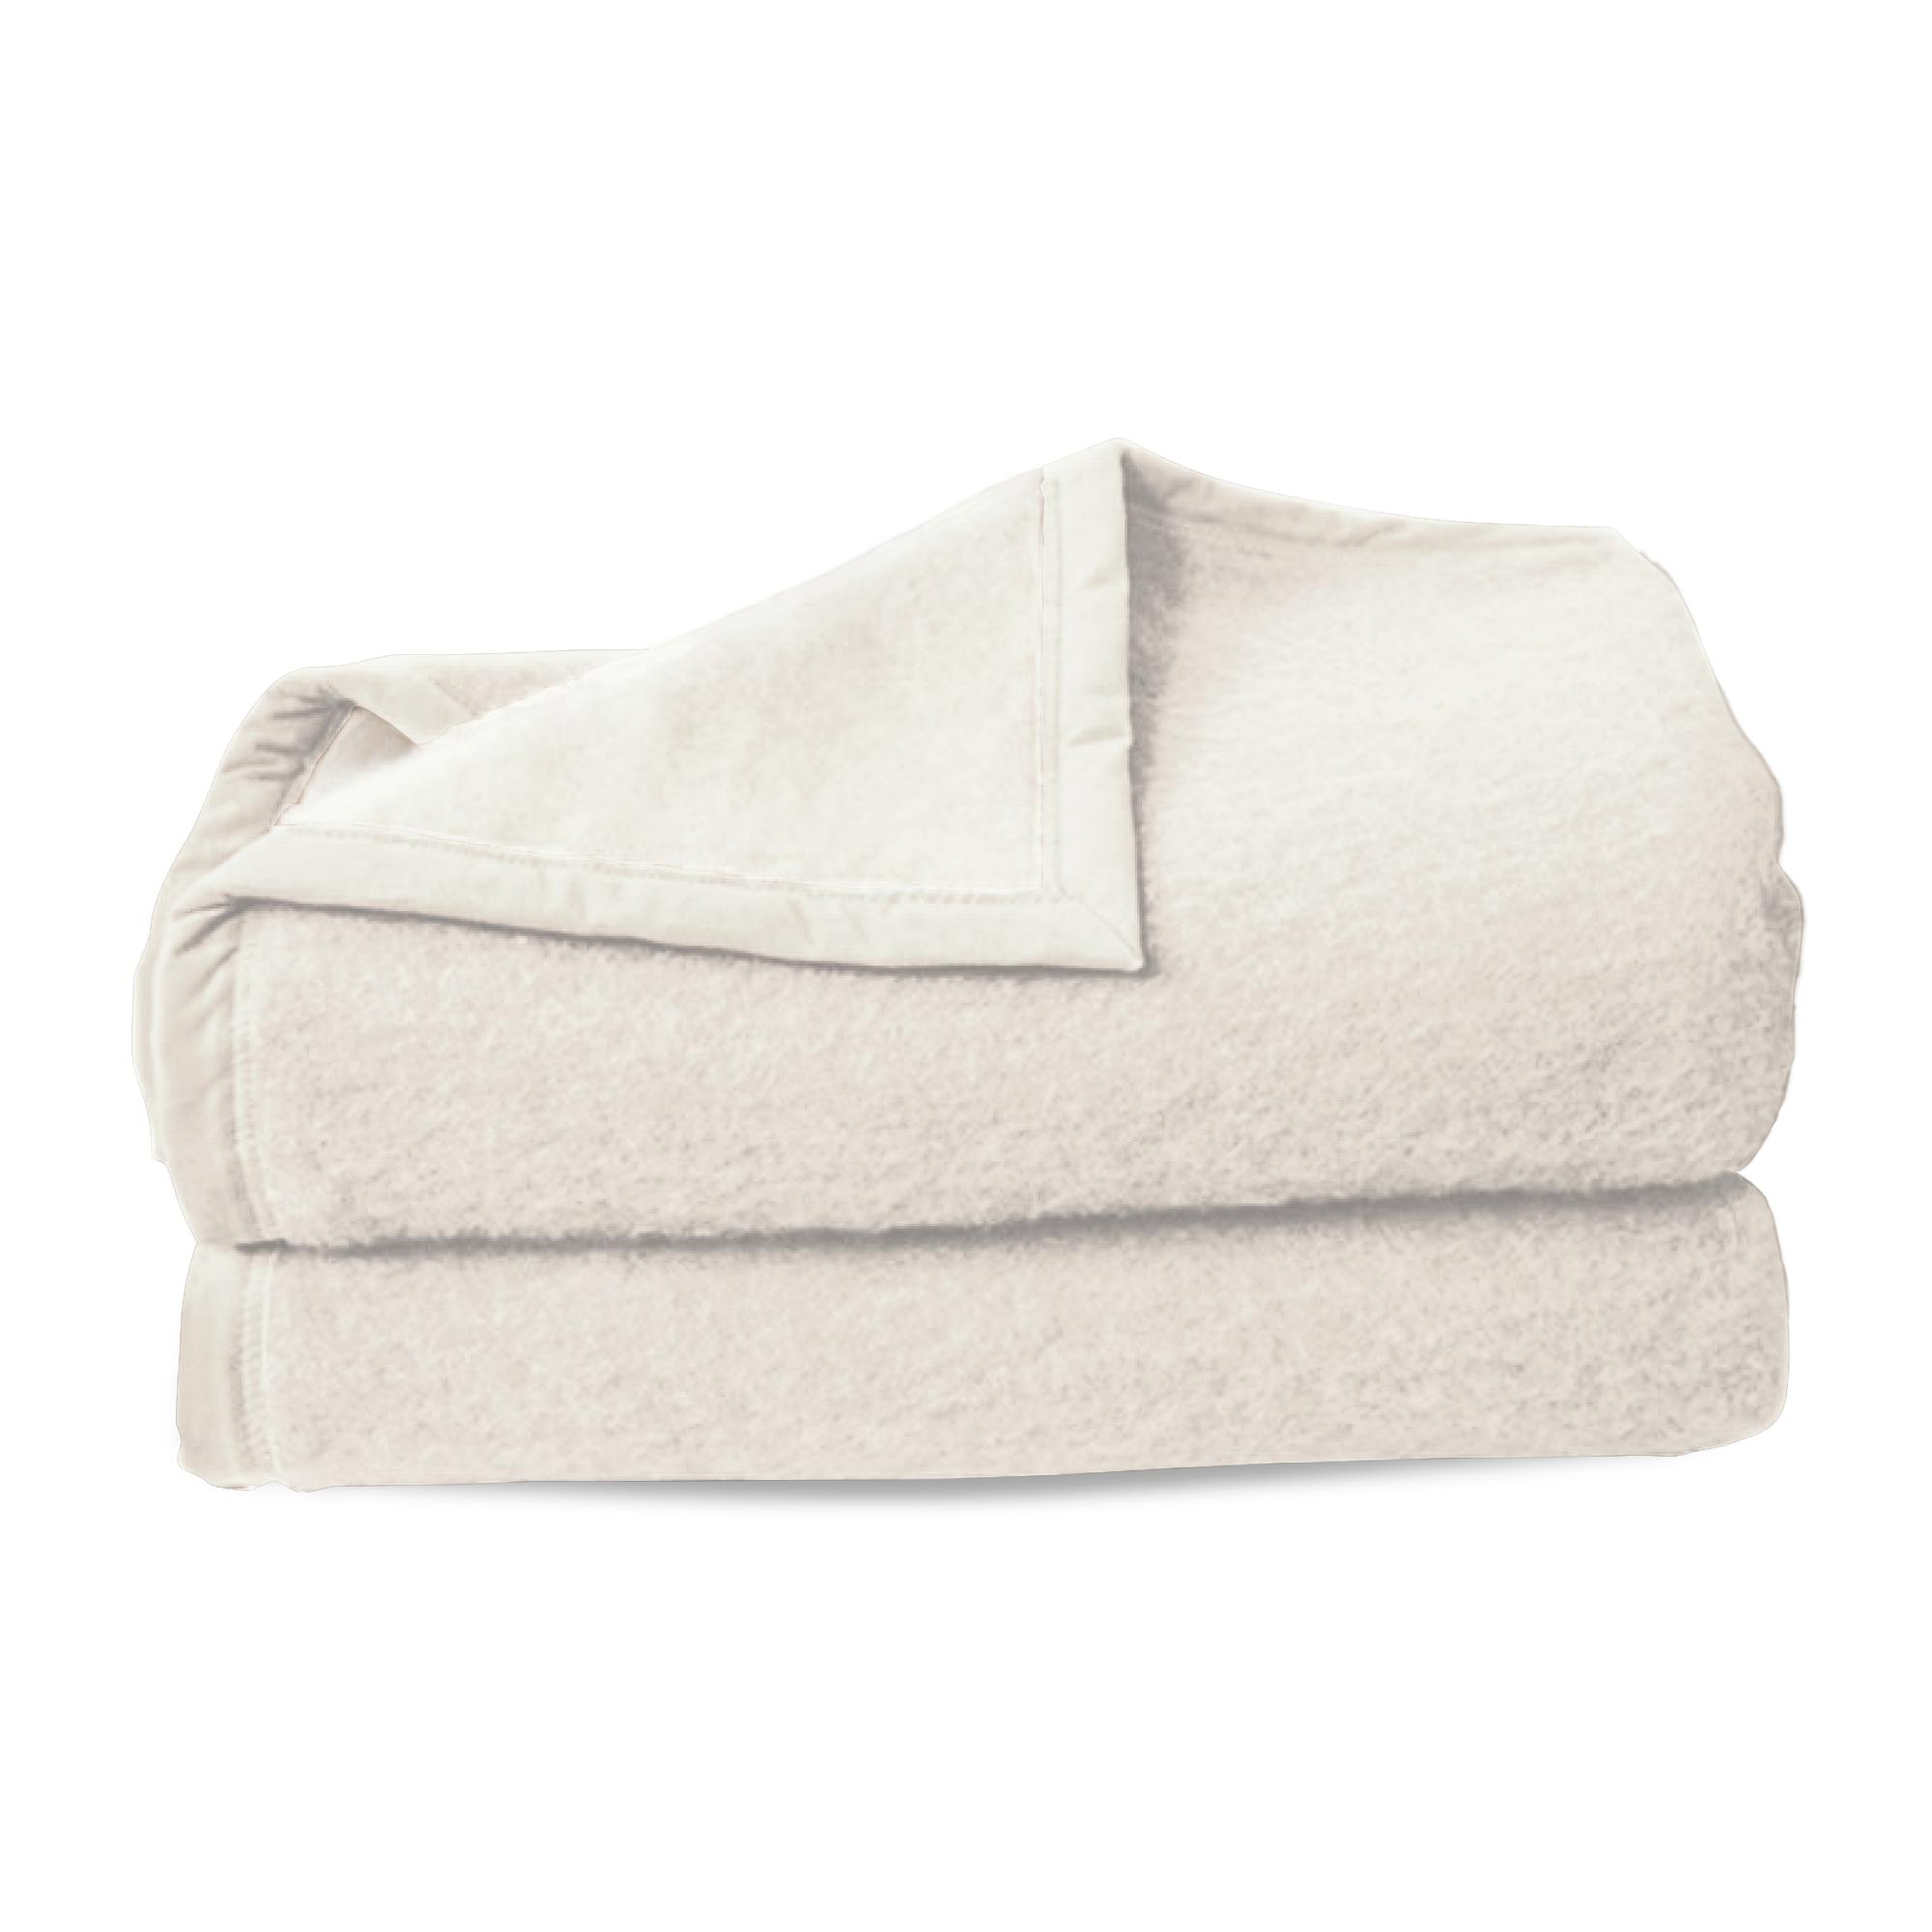 couverture pure laine vierge woolmark 600g m cybele 220x240cm blanc naturel ebay. Black Bedroom Furniture Sets. Home Design Ideas